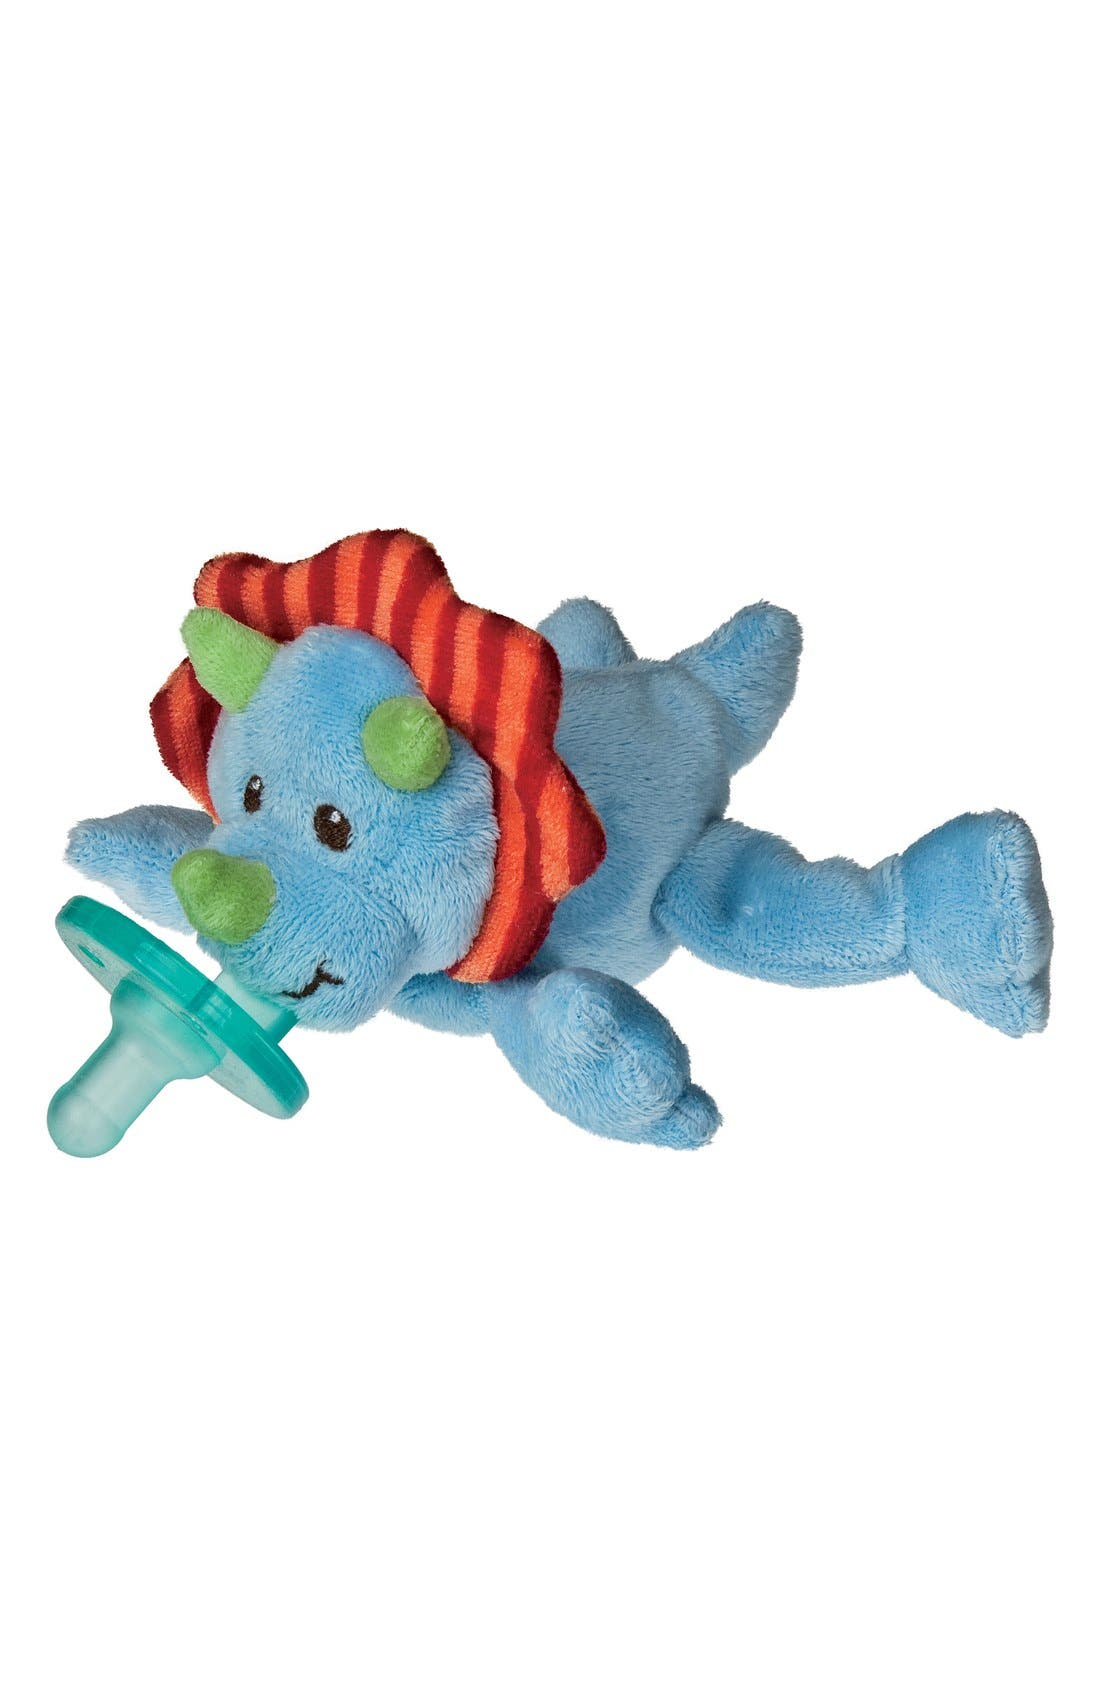 Alternate Image 1 Selected - Mary Meyer 'Okey Dokey Dino' WubbaNub™ Pacifier Toy